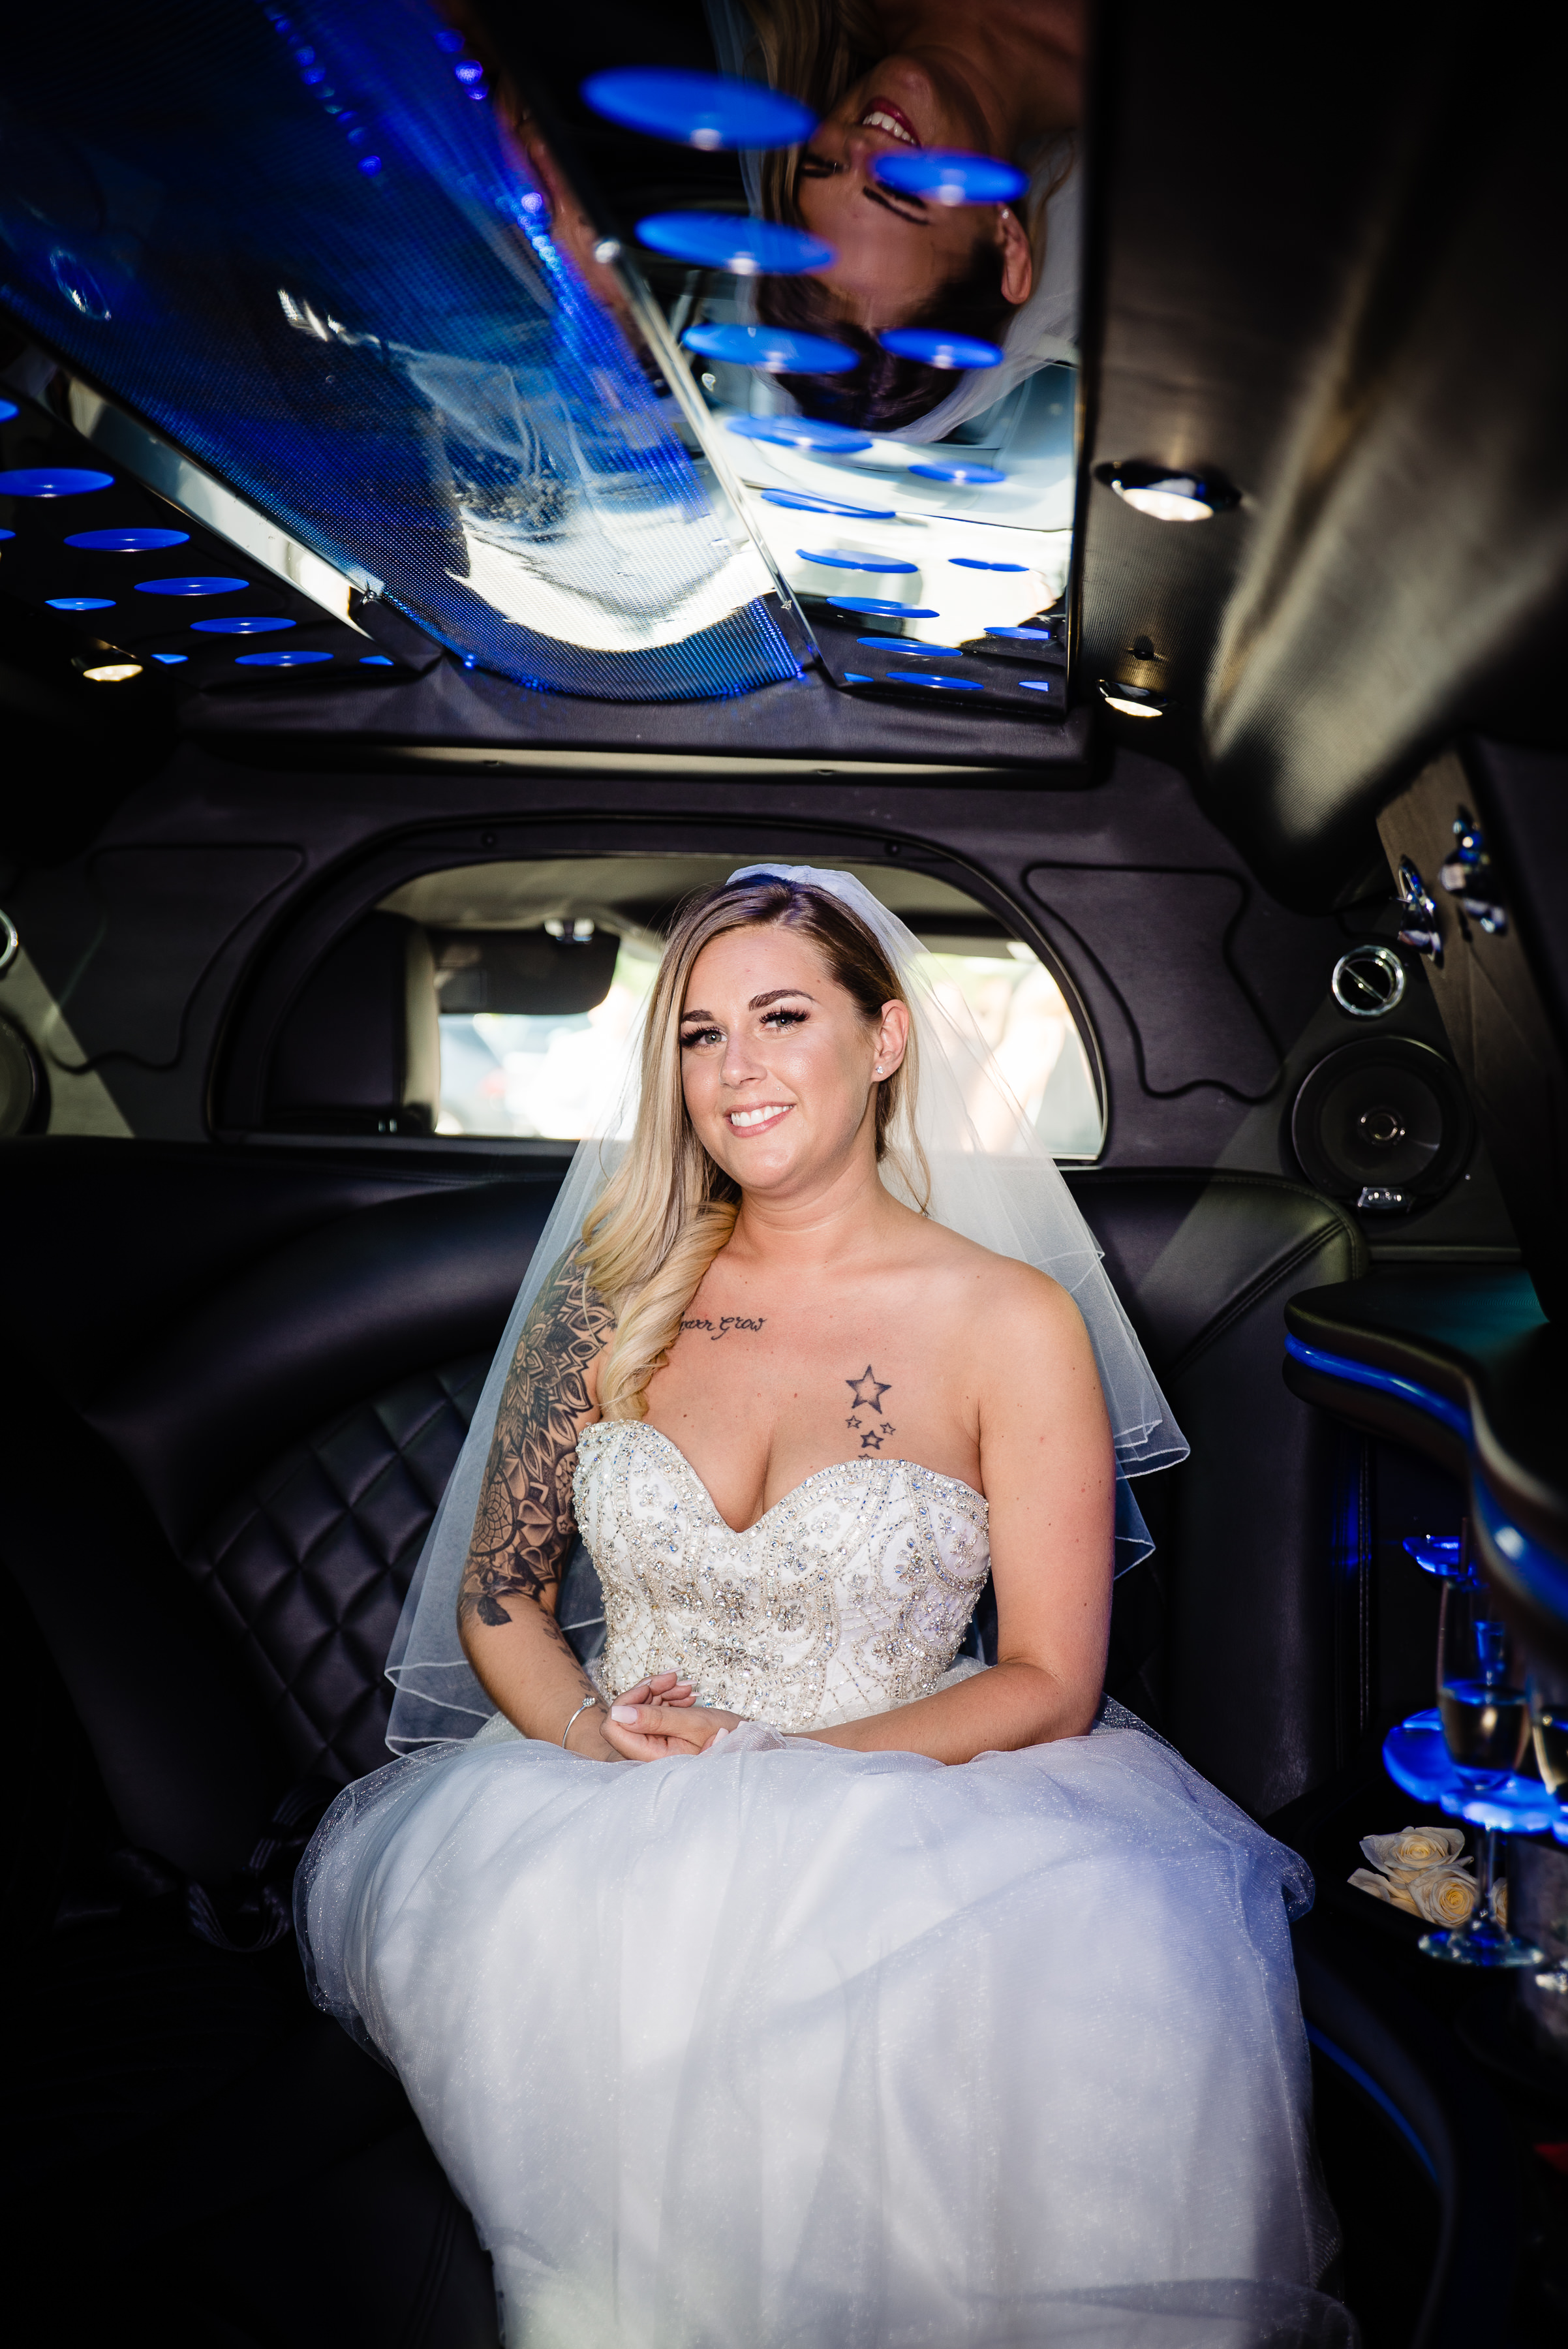 mariage-mariee-limousine-montreal